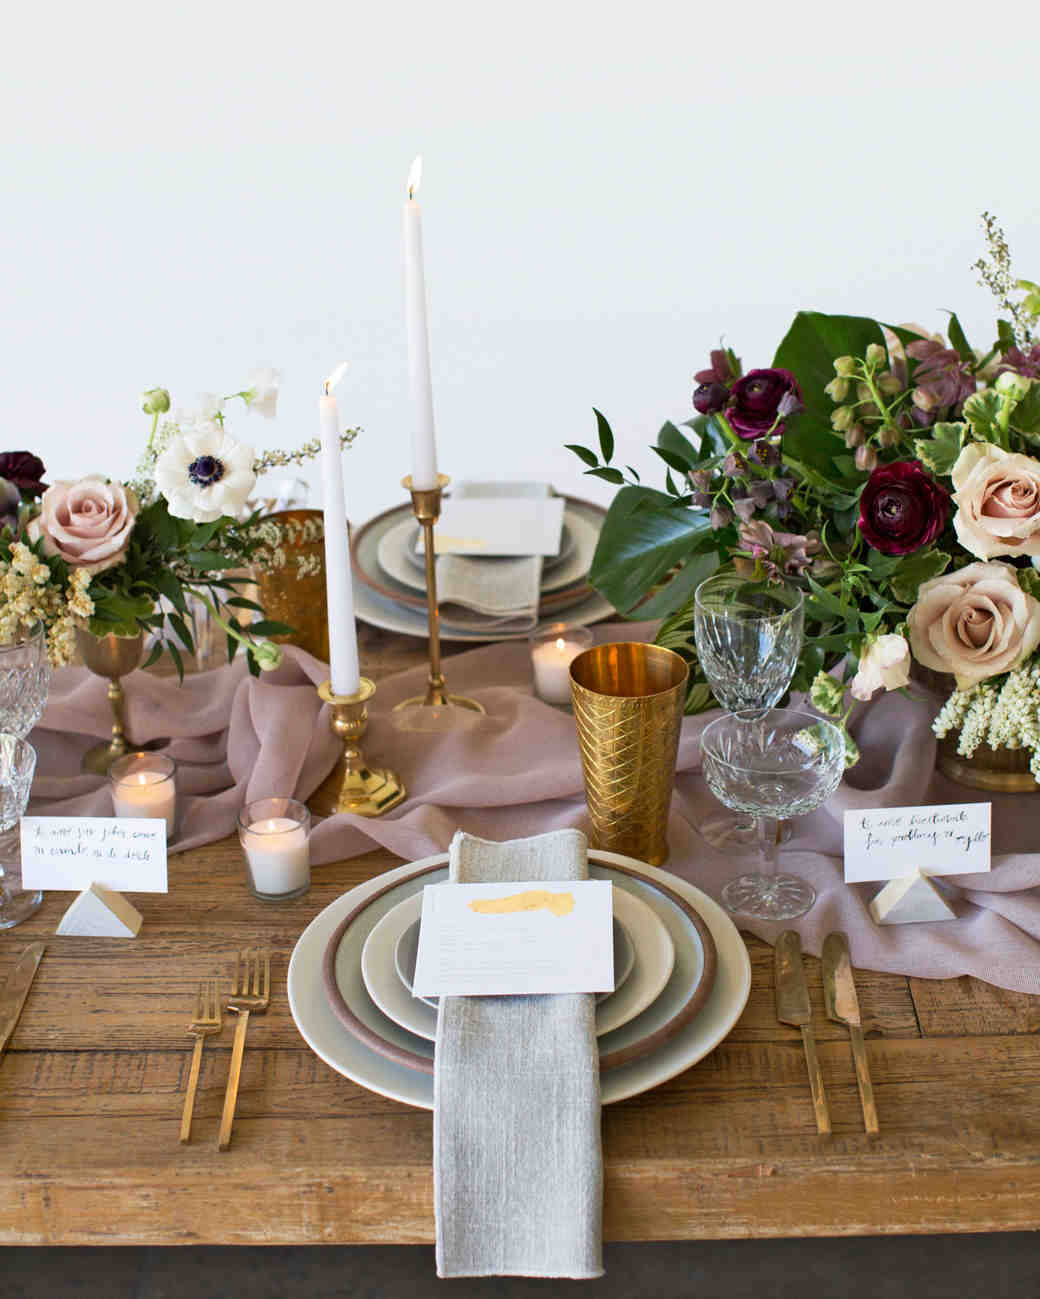 anne-ivan-wedding-california-placesetting-103180445_vert.jpg